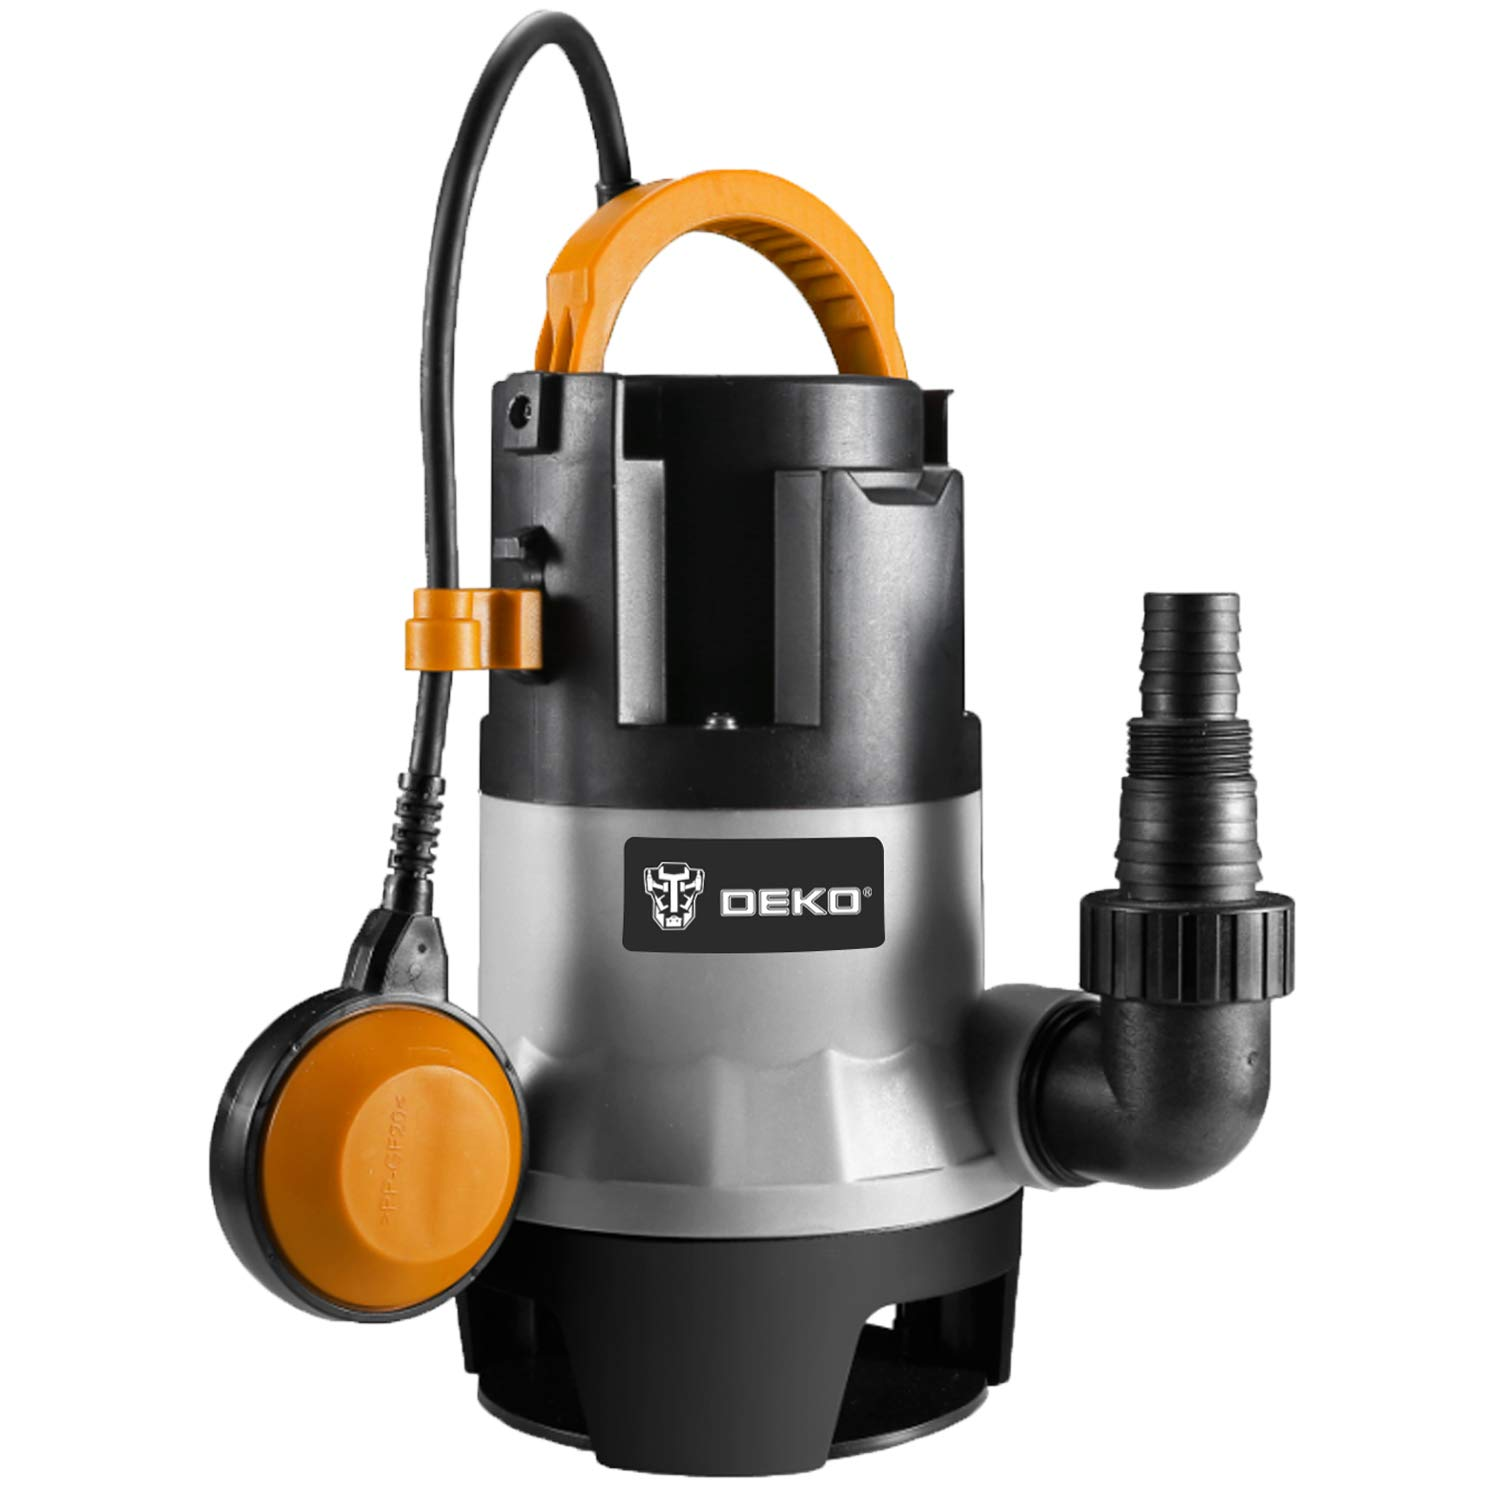 DEKO Sump Pump 1HP 3302GPH 750W Submersible Clean/Dirty Water Pump Swimming Pool Garden Tub Pond Flood Drain w/Float Switch and Long 16ft Cable